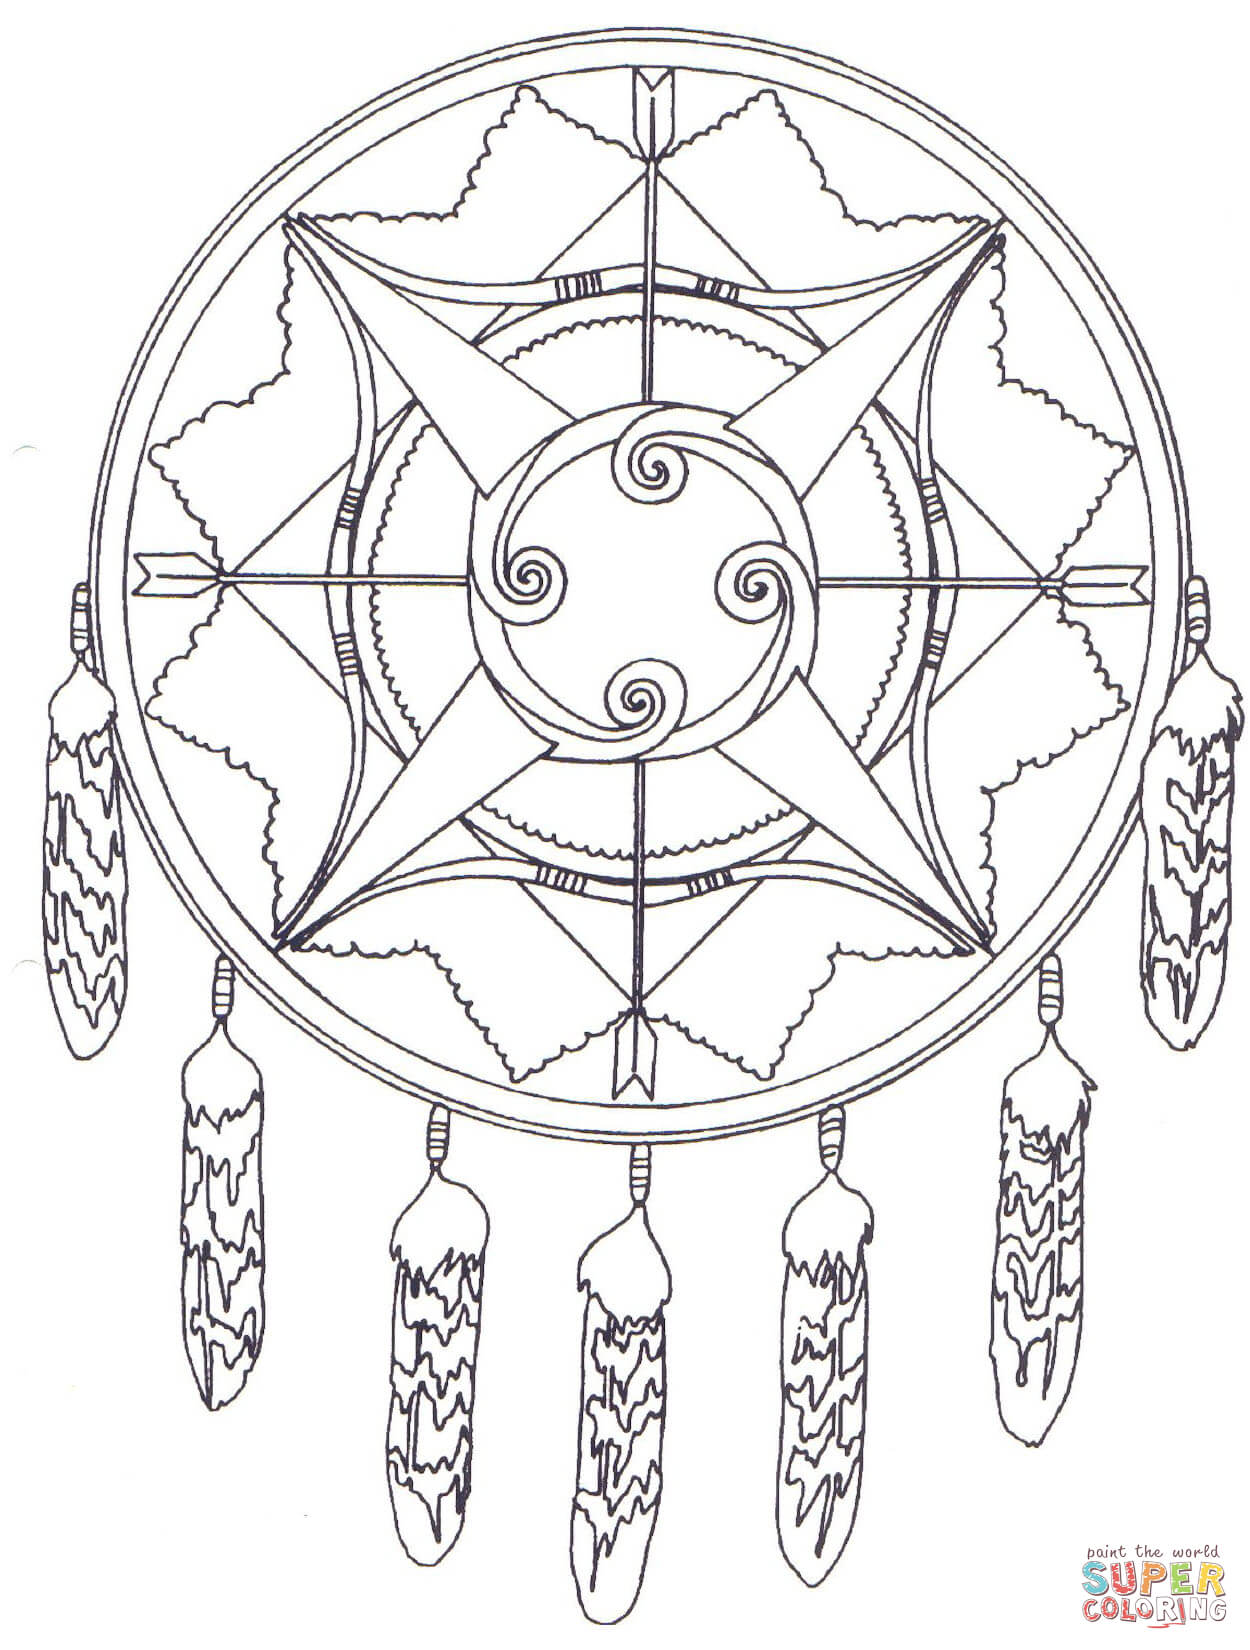 1250x1650 Native American Mandala With Bows And Arrows Coloring Pages.jpg